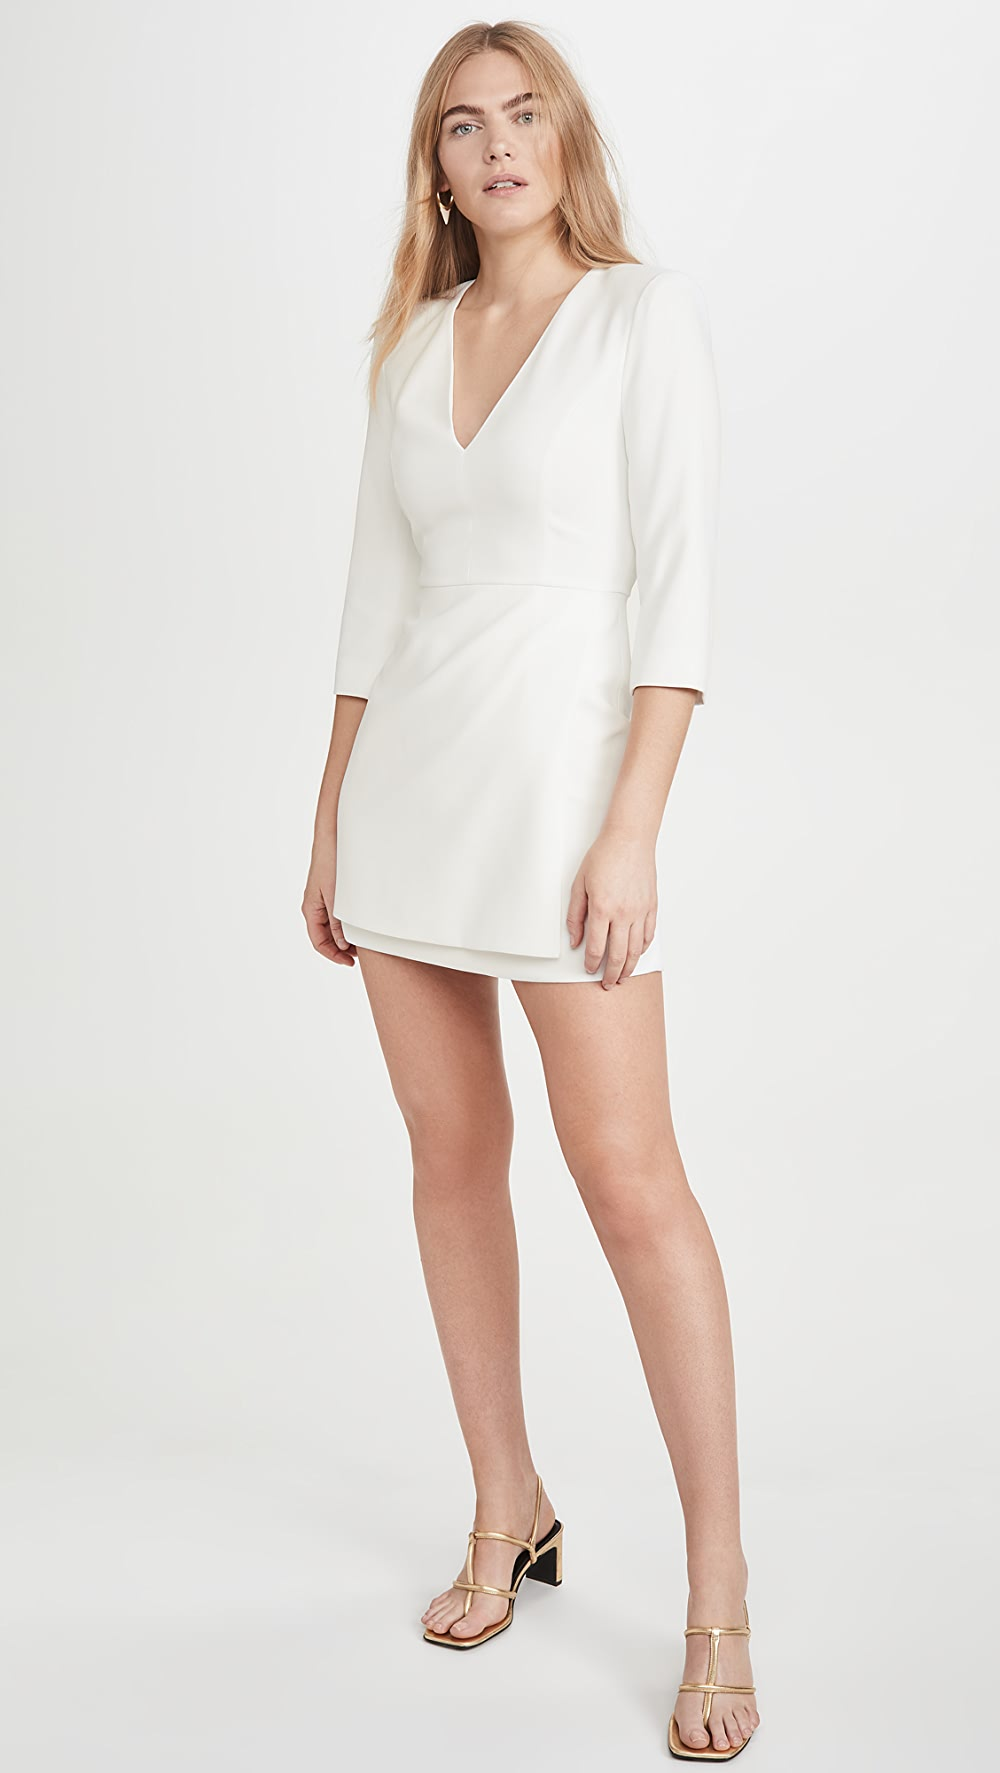 Discreet Alice + Olivia - Stevie Double Layer Dress Providing Amenities For The People; Making Life Easier For The Population